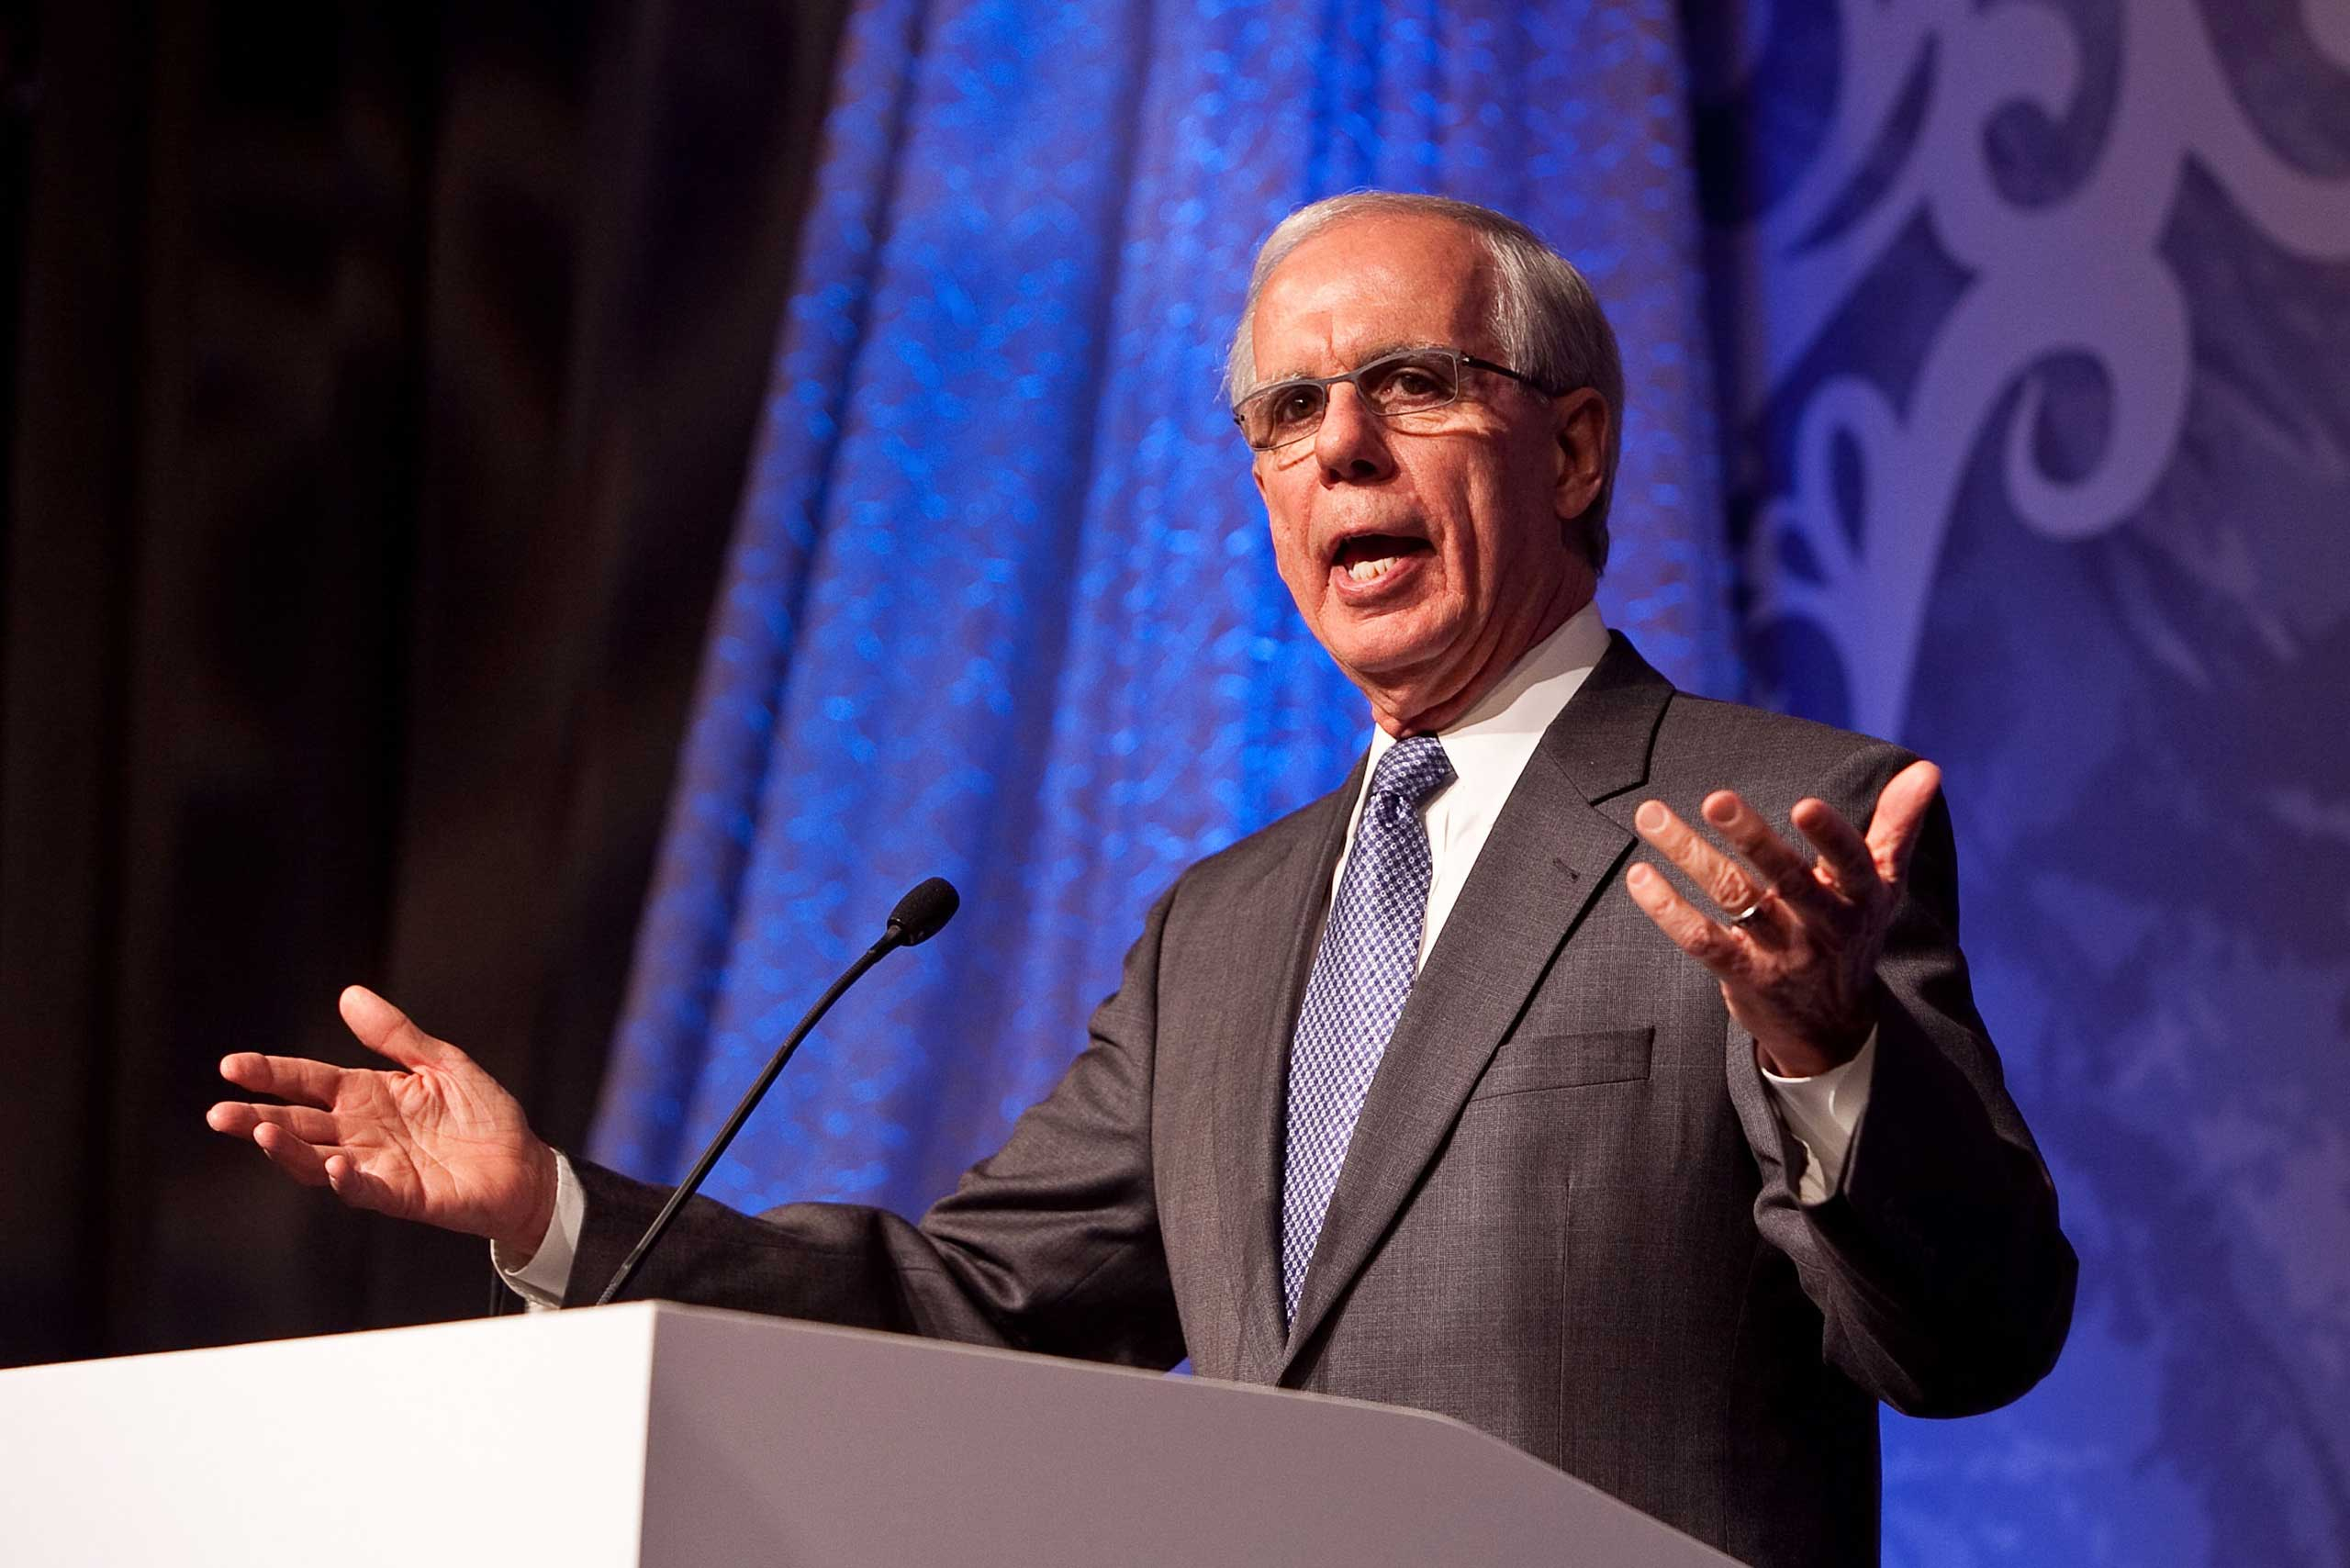 Rep. Tony Coelho (D-Calif.) was the third-ranking member of House Democratic leadership and resigned from Congress altogether as he faced a 1989 ethics probe into his personal finances.